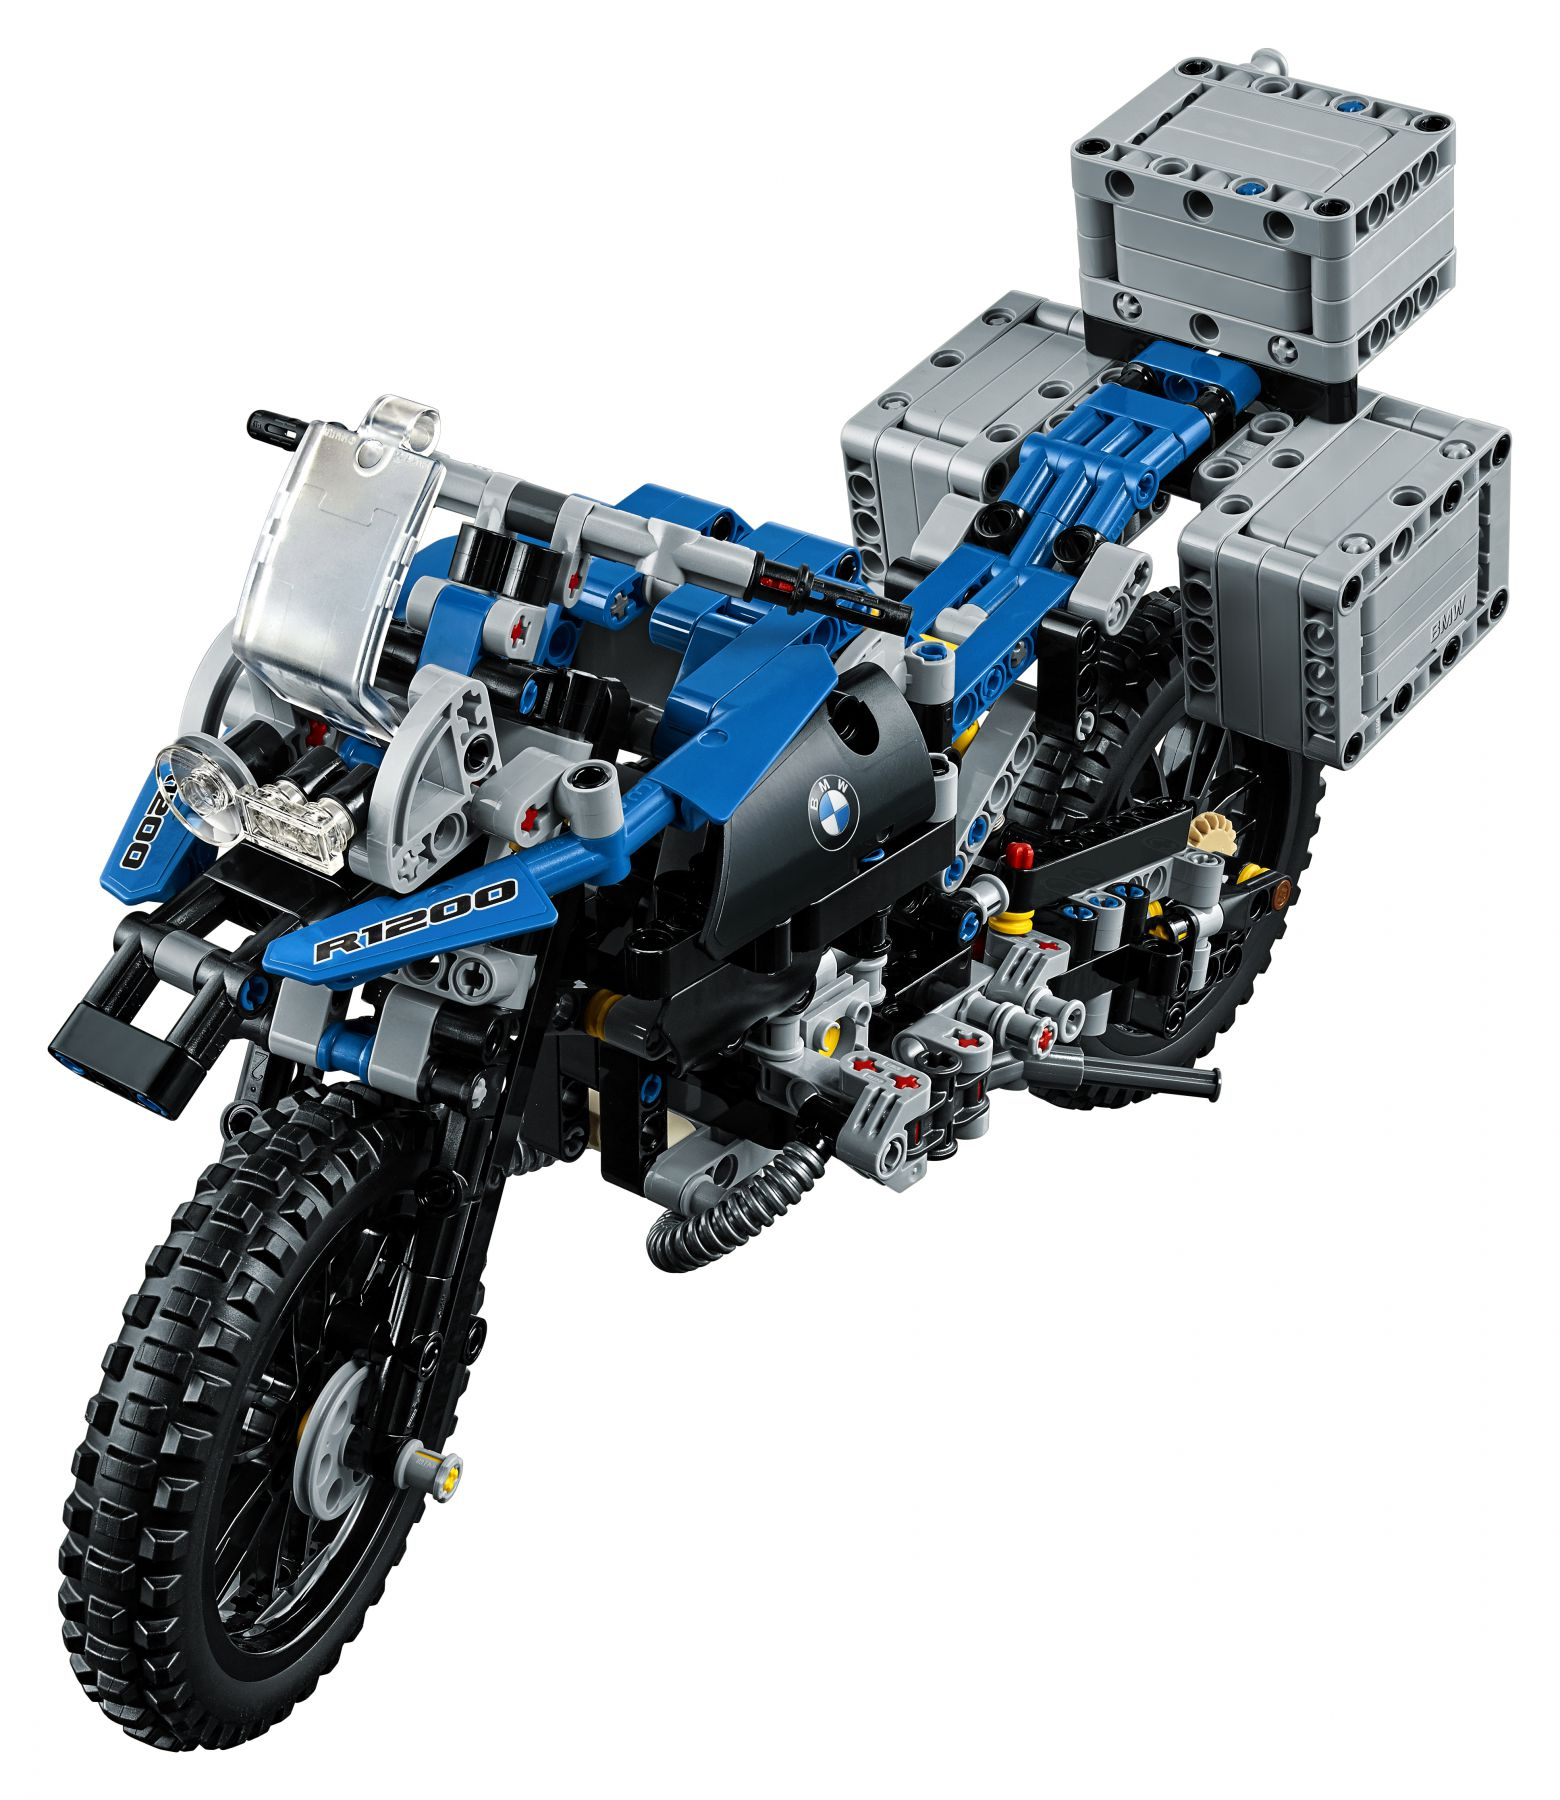 LEGO Technic 42063 BMW R 1200 GS Adventure LEGO_42063_bmw-R-1200-GS-Adventure_img2.jpg